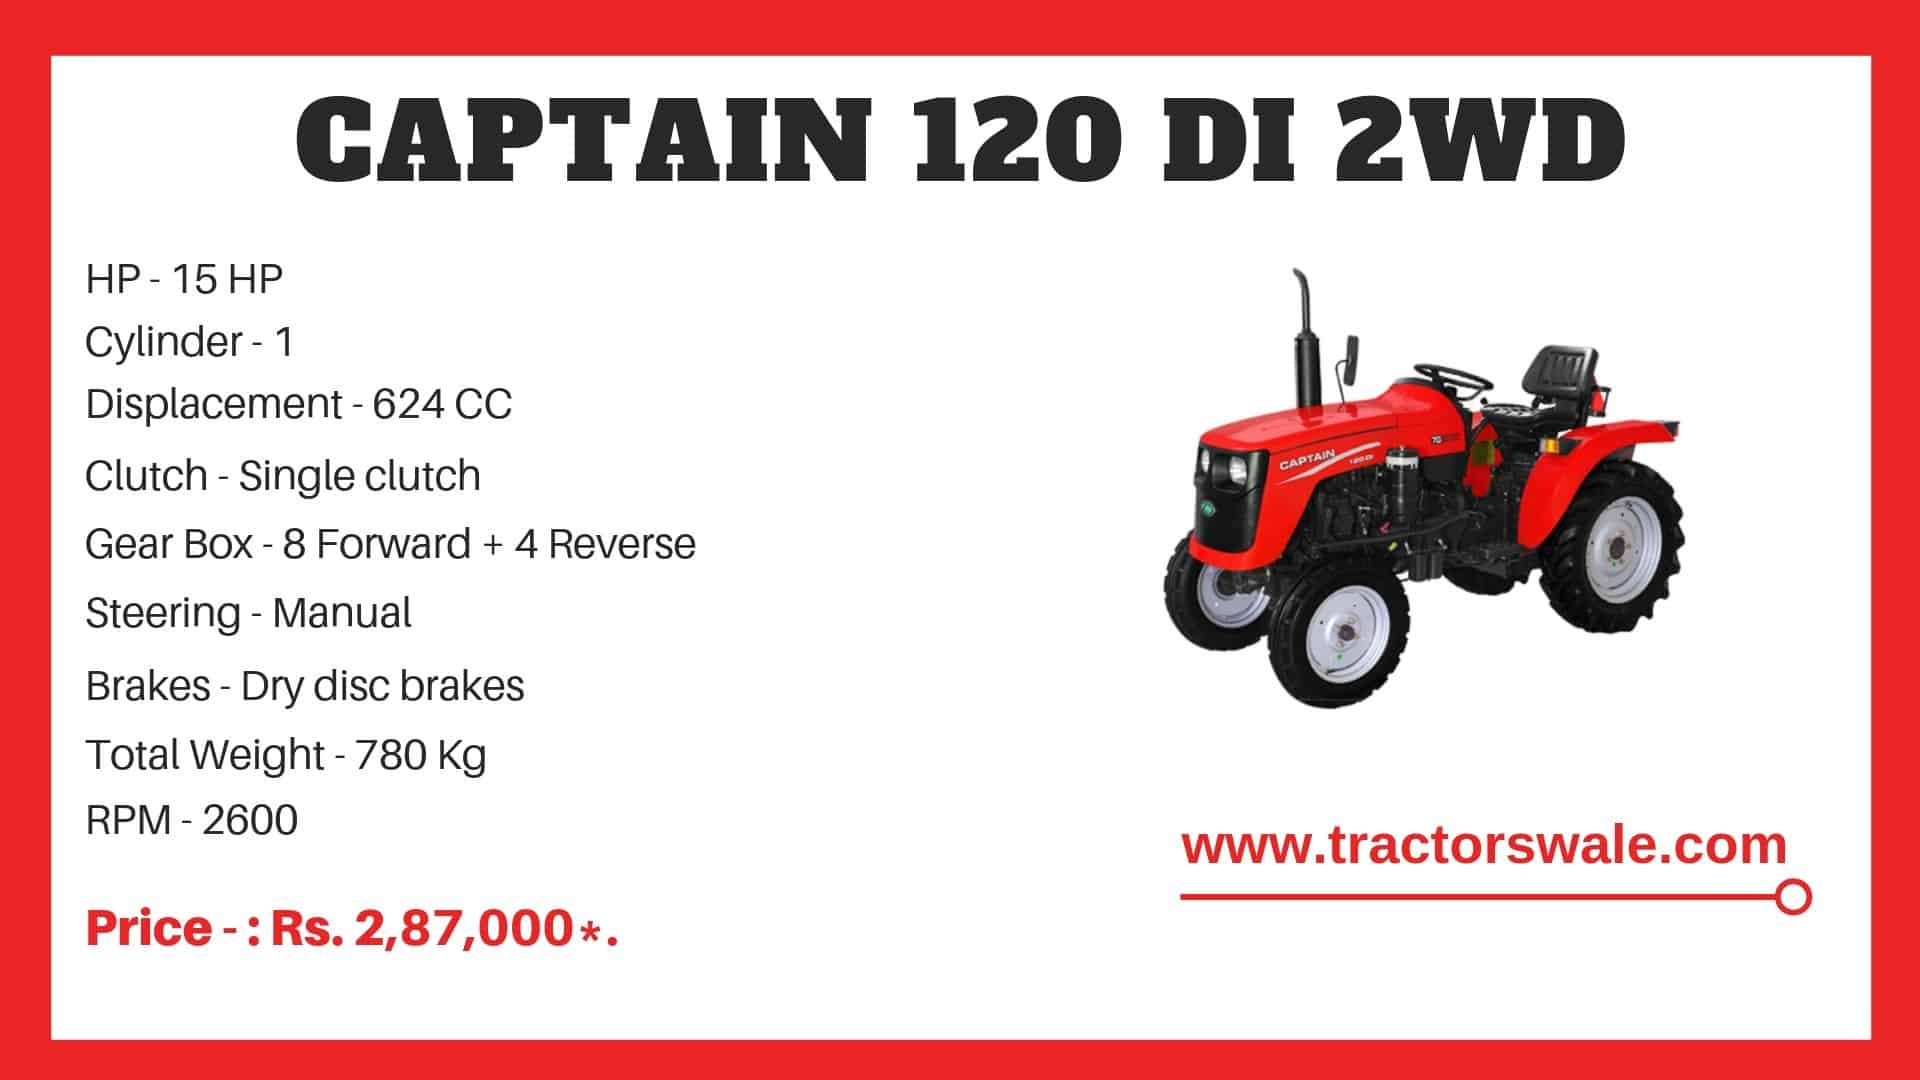 Specification of Captain 120 DI 2WD